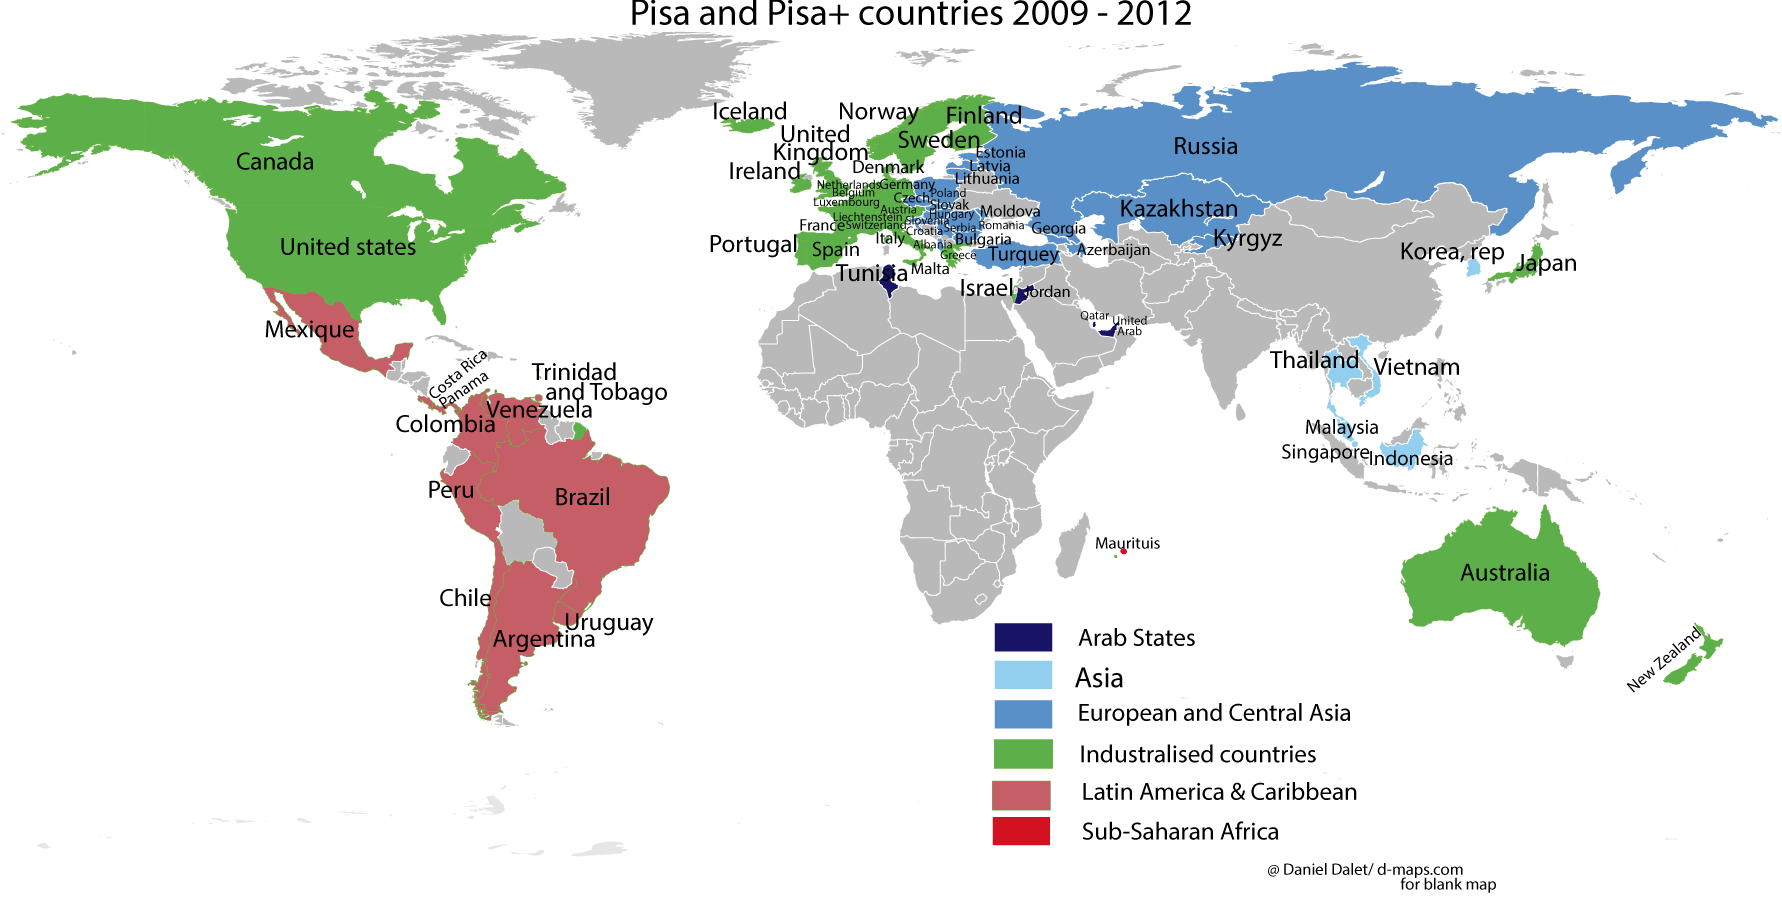 pisa countries